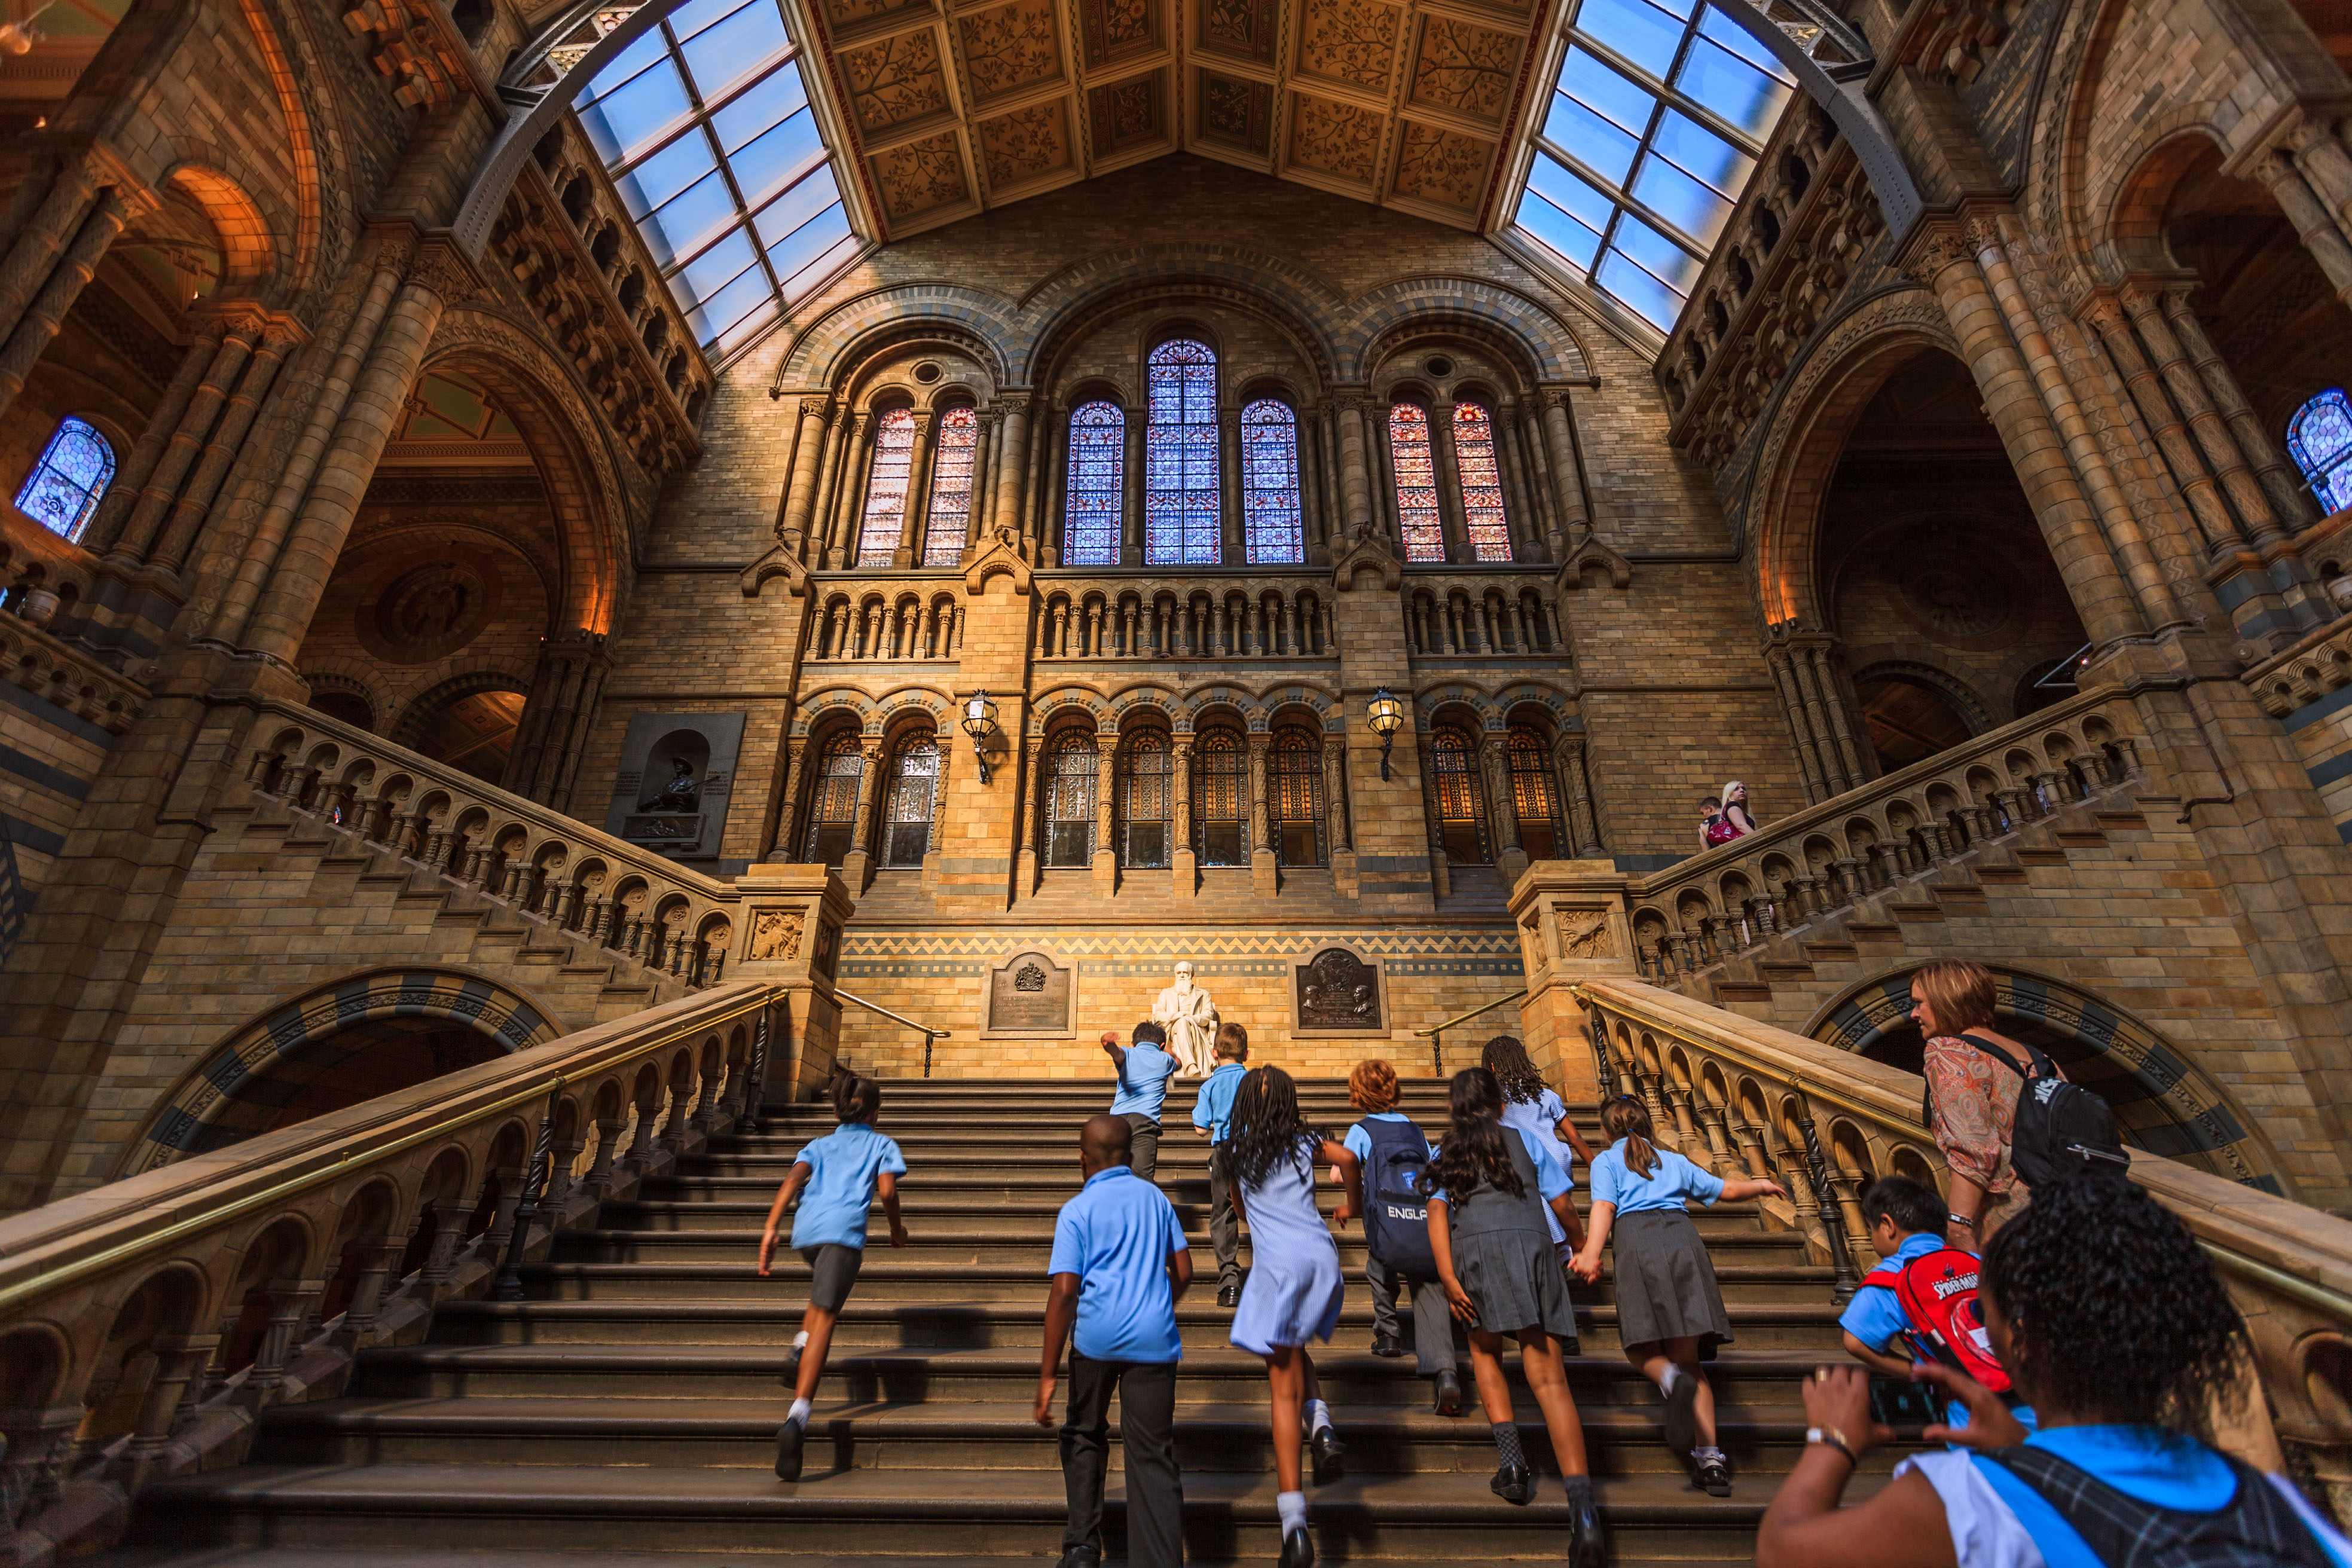 File:Natural History Museum UK.jpg - Wikimedia Commons